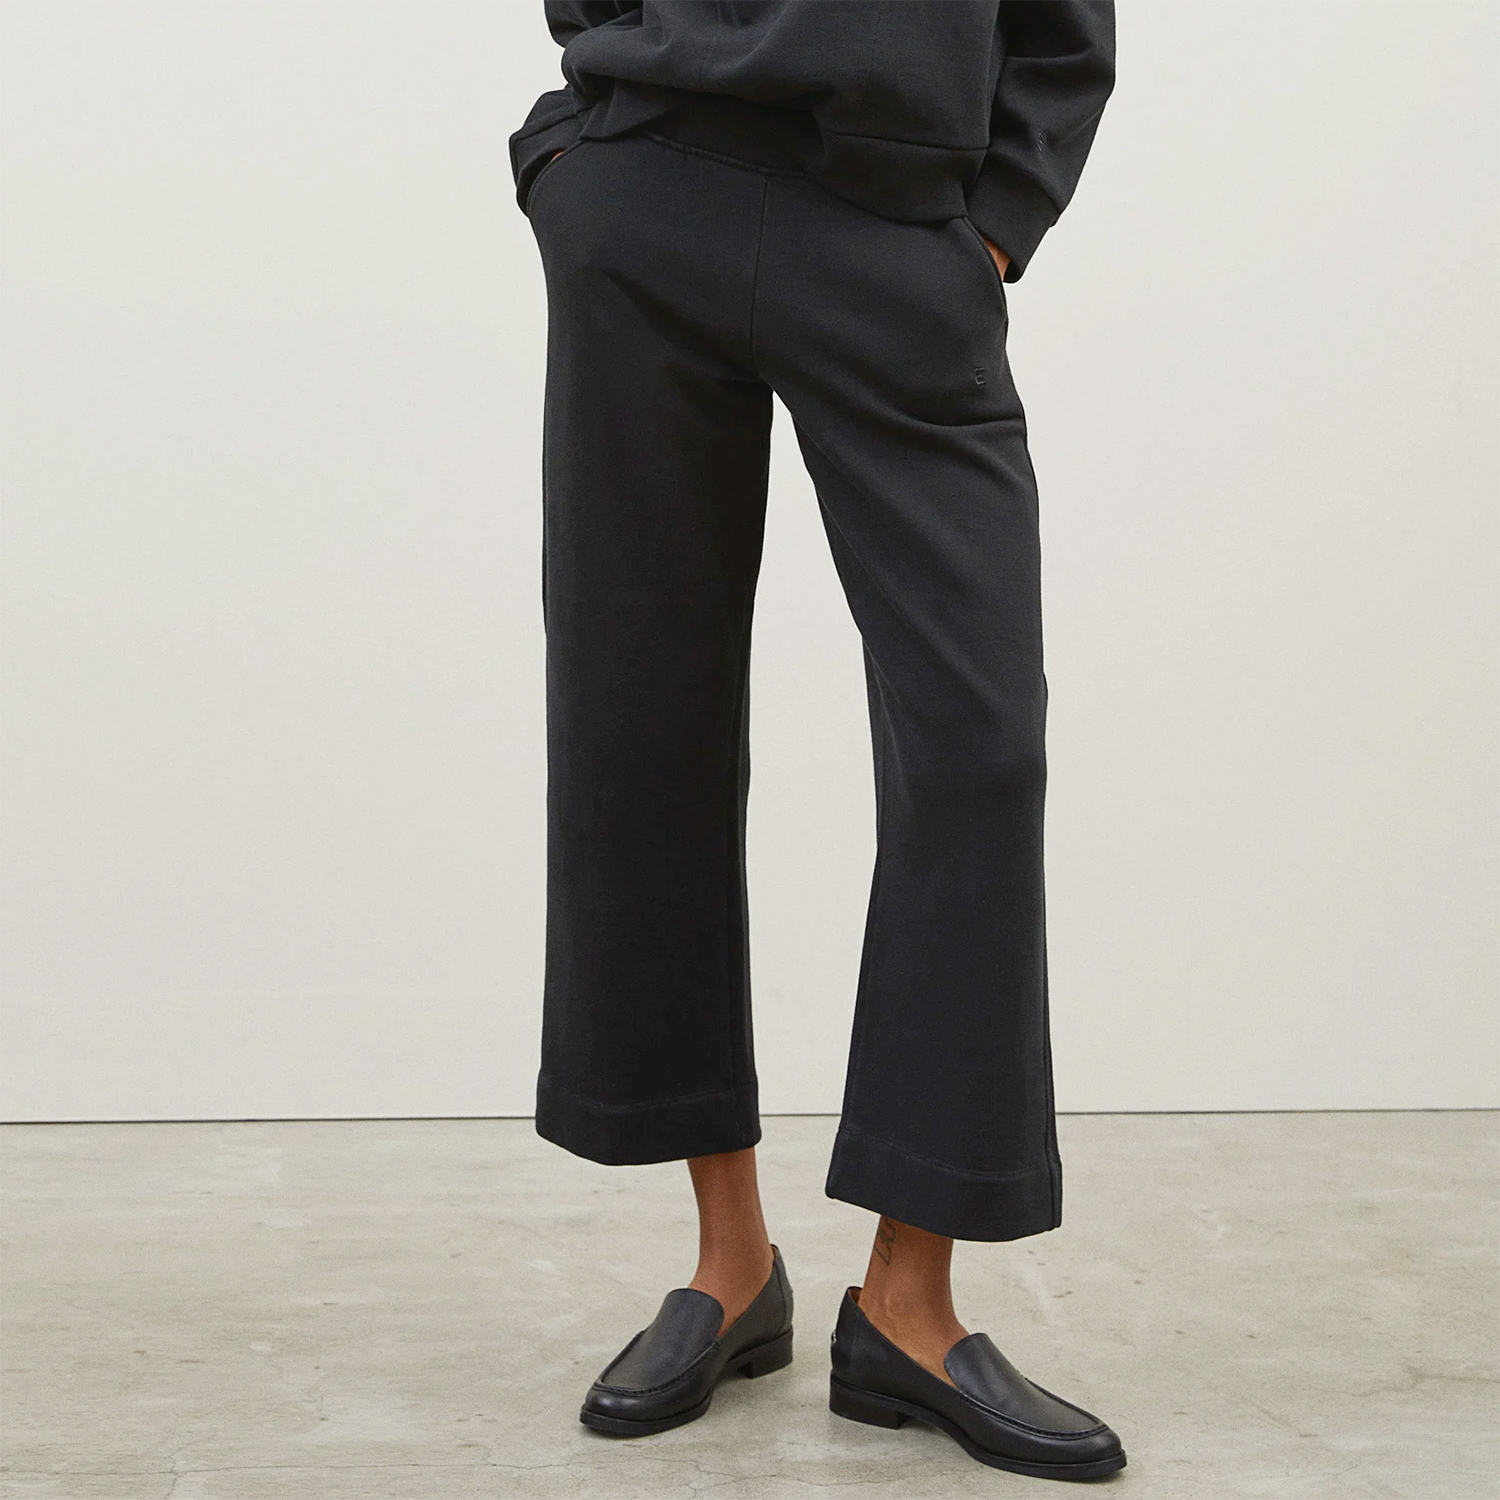 everlane the track collection review